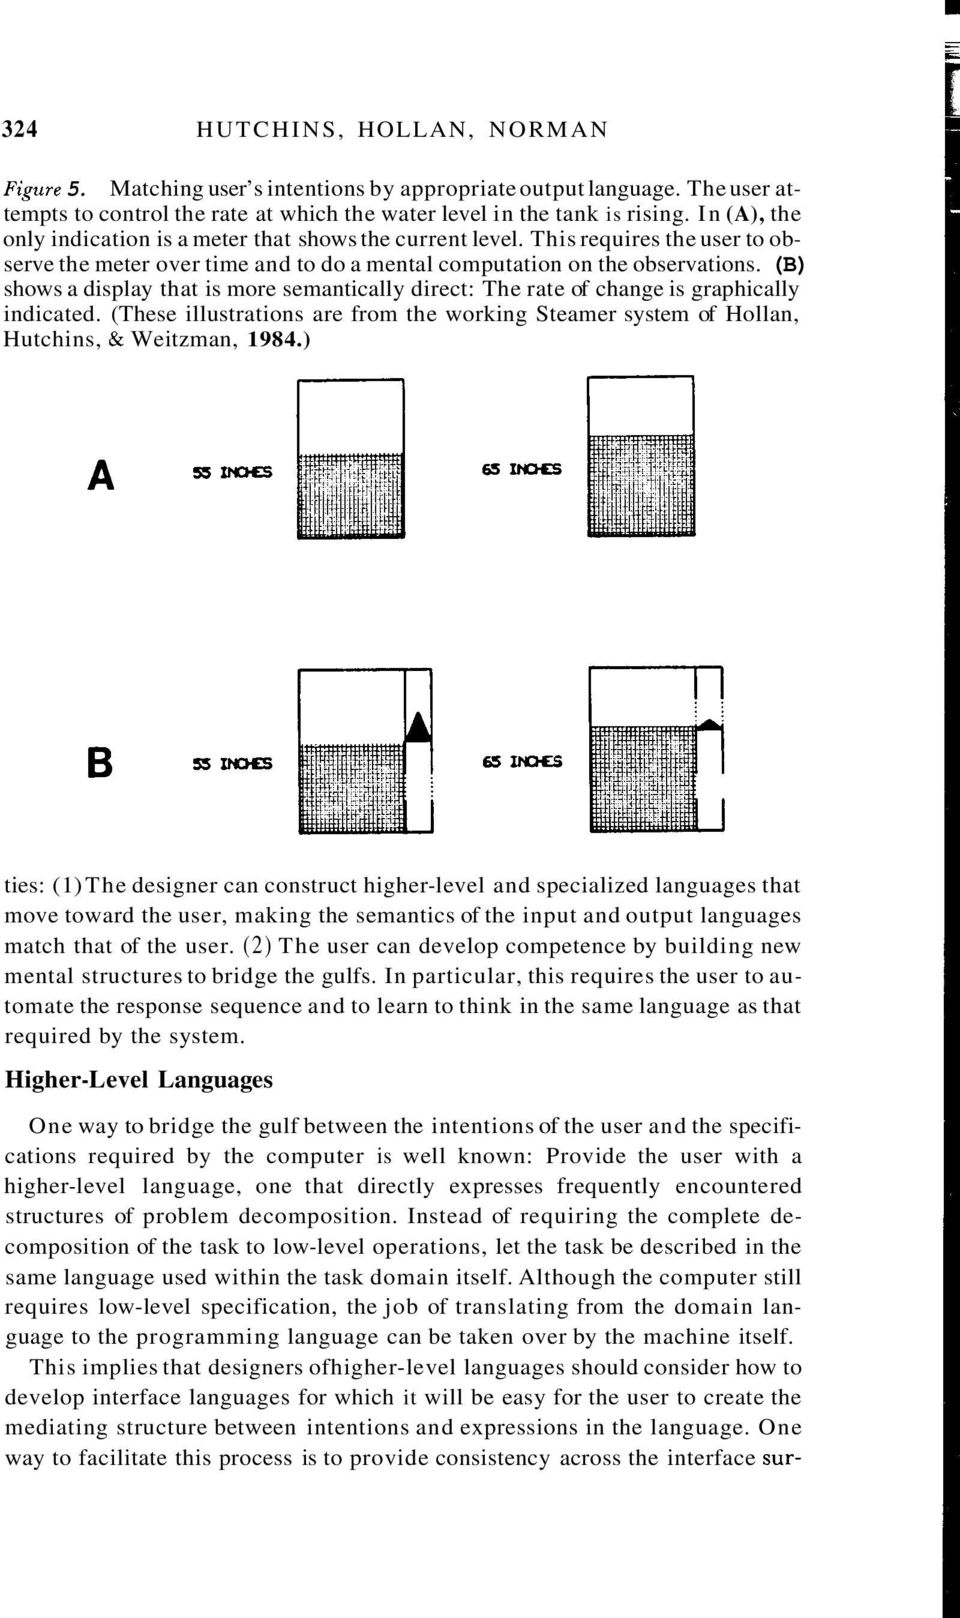 (B) shows a display that is more semantically direct: The rate of change is graphically indicated. (These illustrations are from the working Steamer system of Hollan, Hutchins, & Weitzman, 1984.